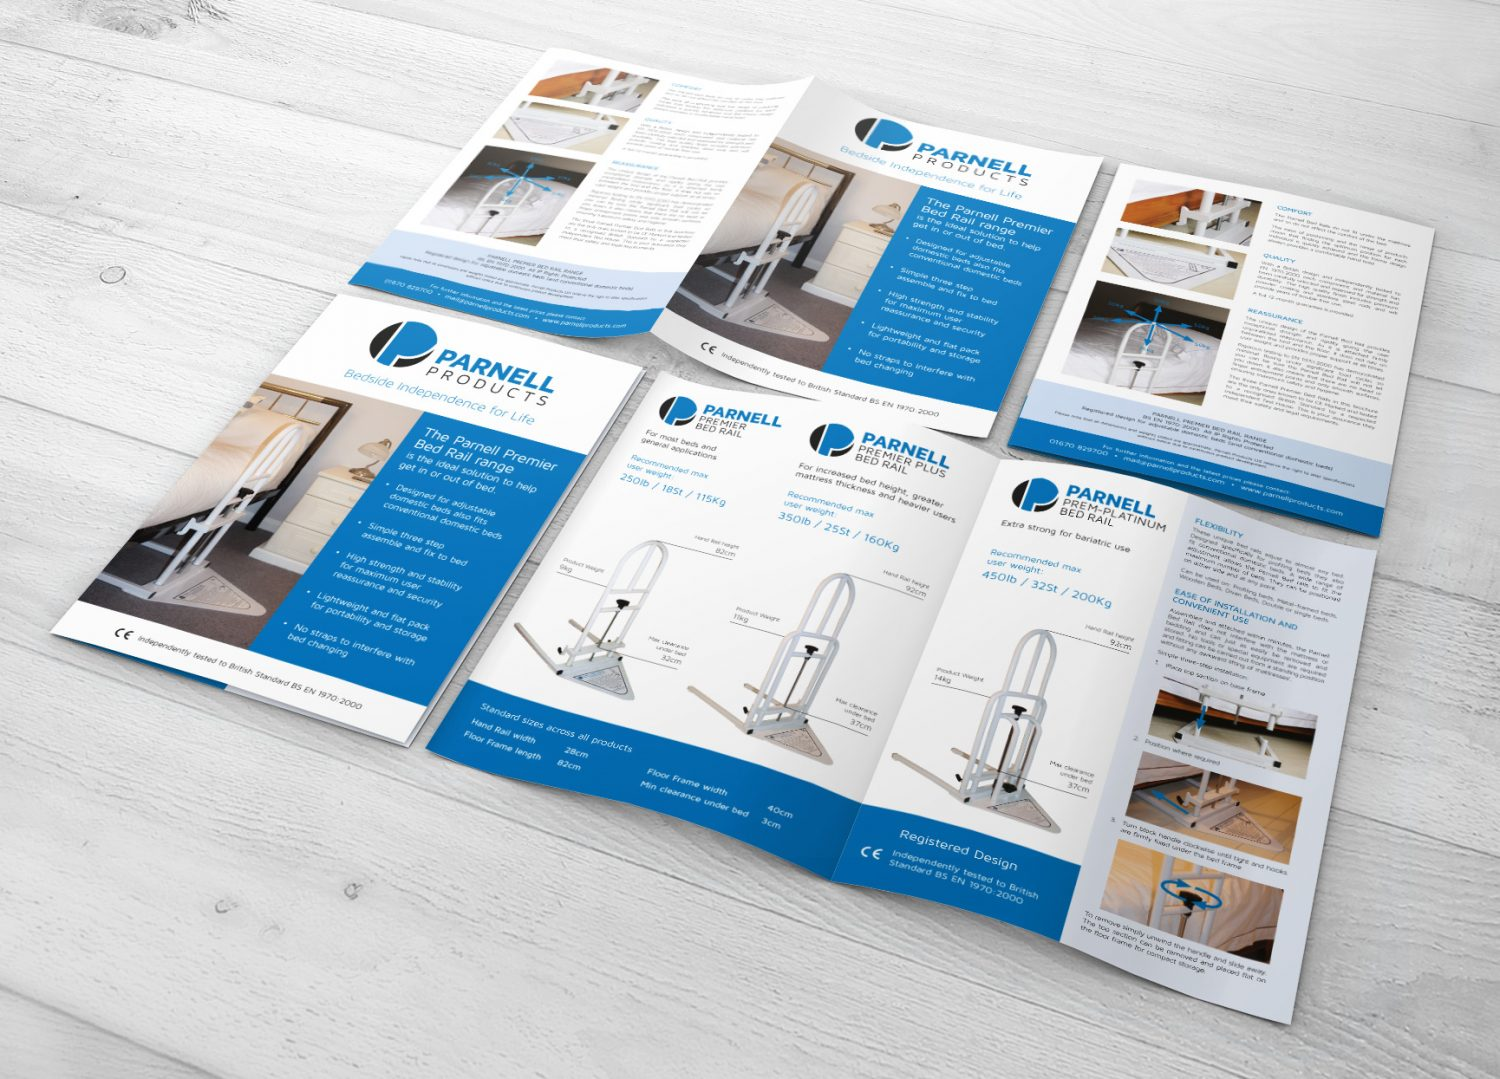 Parnell Products leaflet